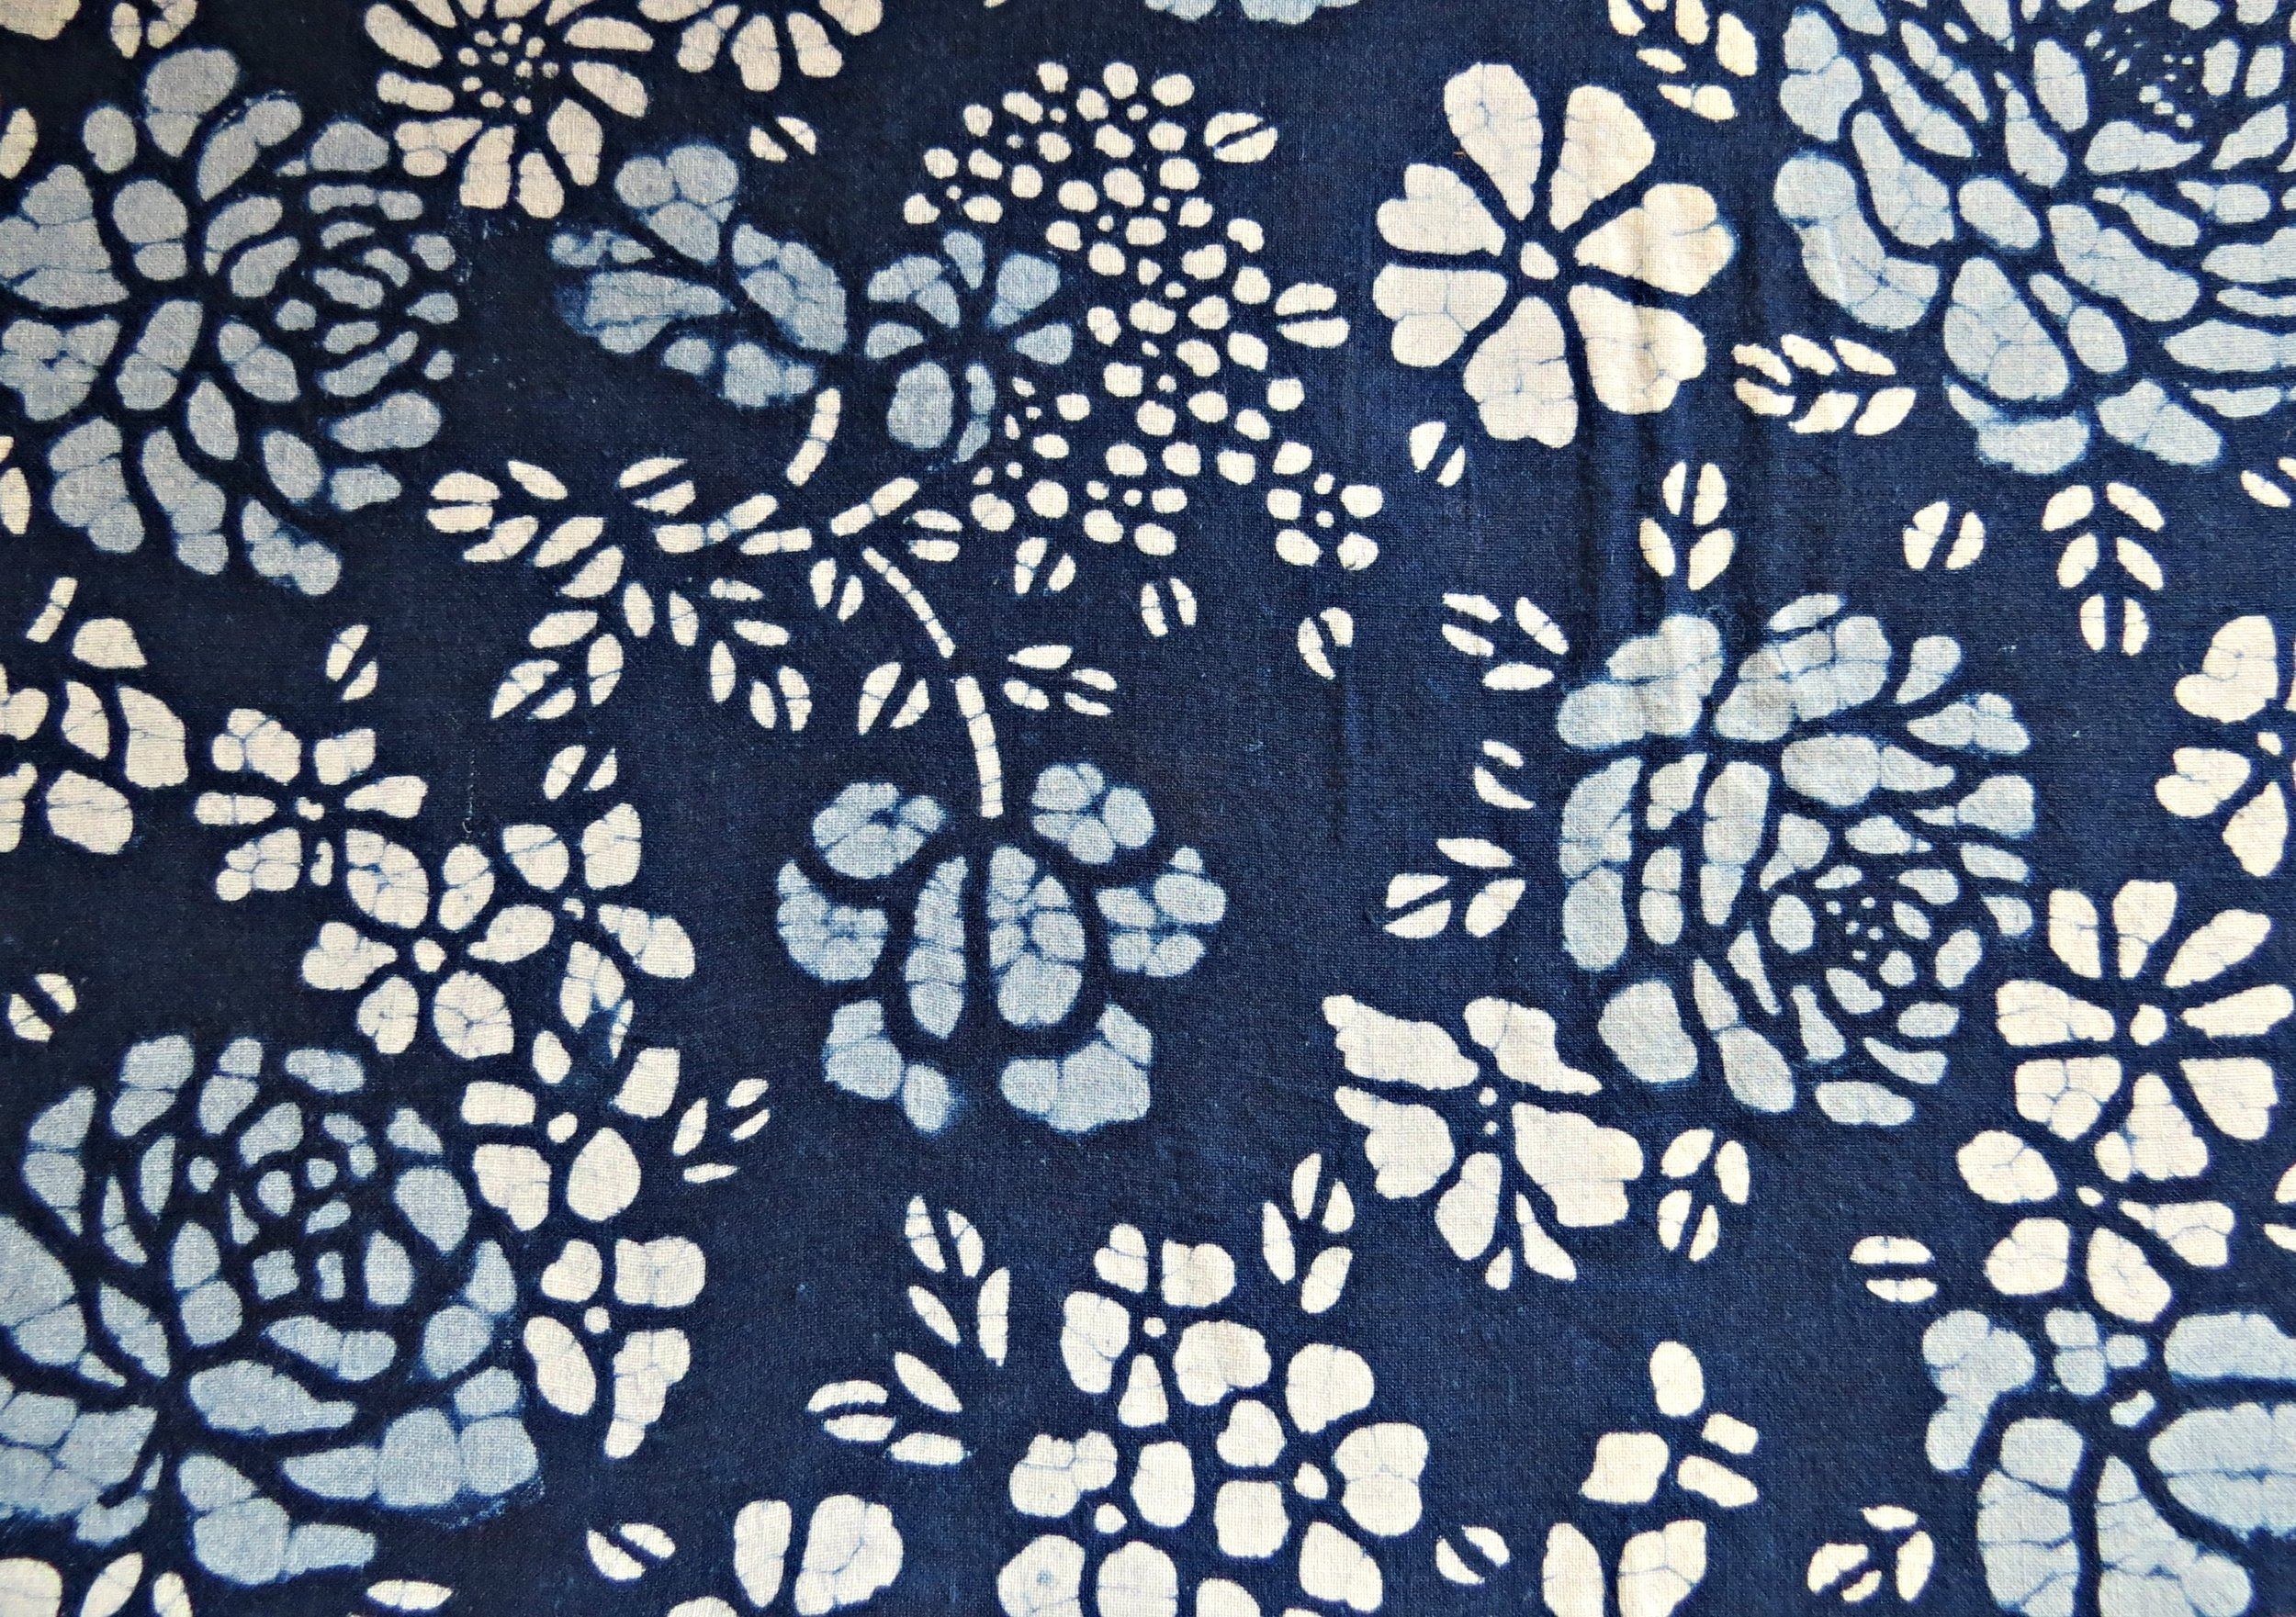 I have not actually been anywhere to see the Batik process, but I am almost certain that this piece is batik. You can tell by the small lines in the design, which is where the wax cracked and allowed some dye to penetrate the cloth. This is also a good example of the two tones of blue sometimes seen.